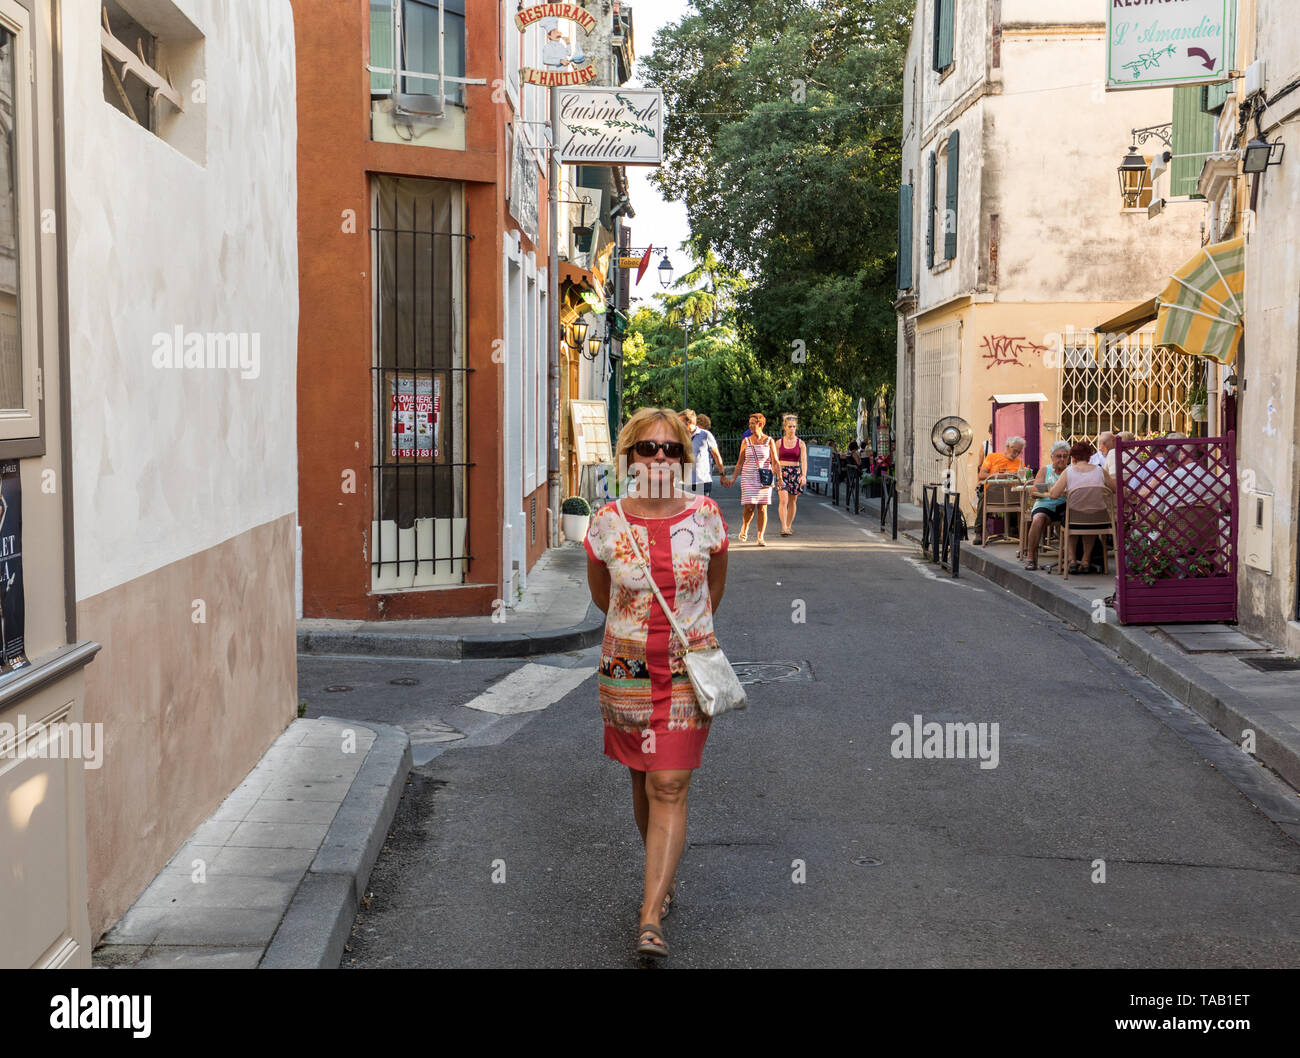 Arles, France - June 24, 2017: Cafe and restautants in the old town of Arles in Provence in the South of France. - Stock Image